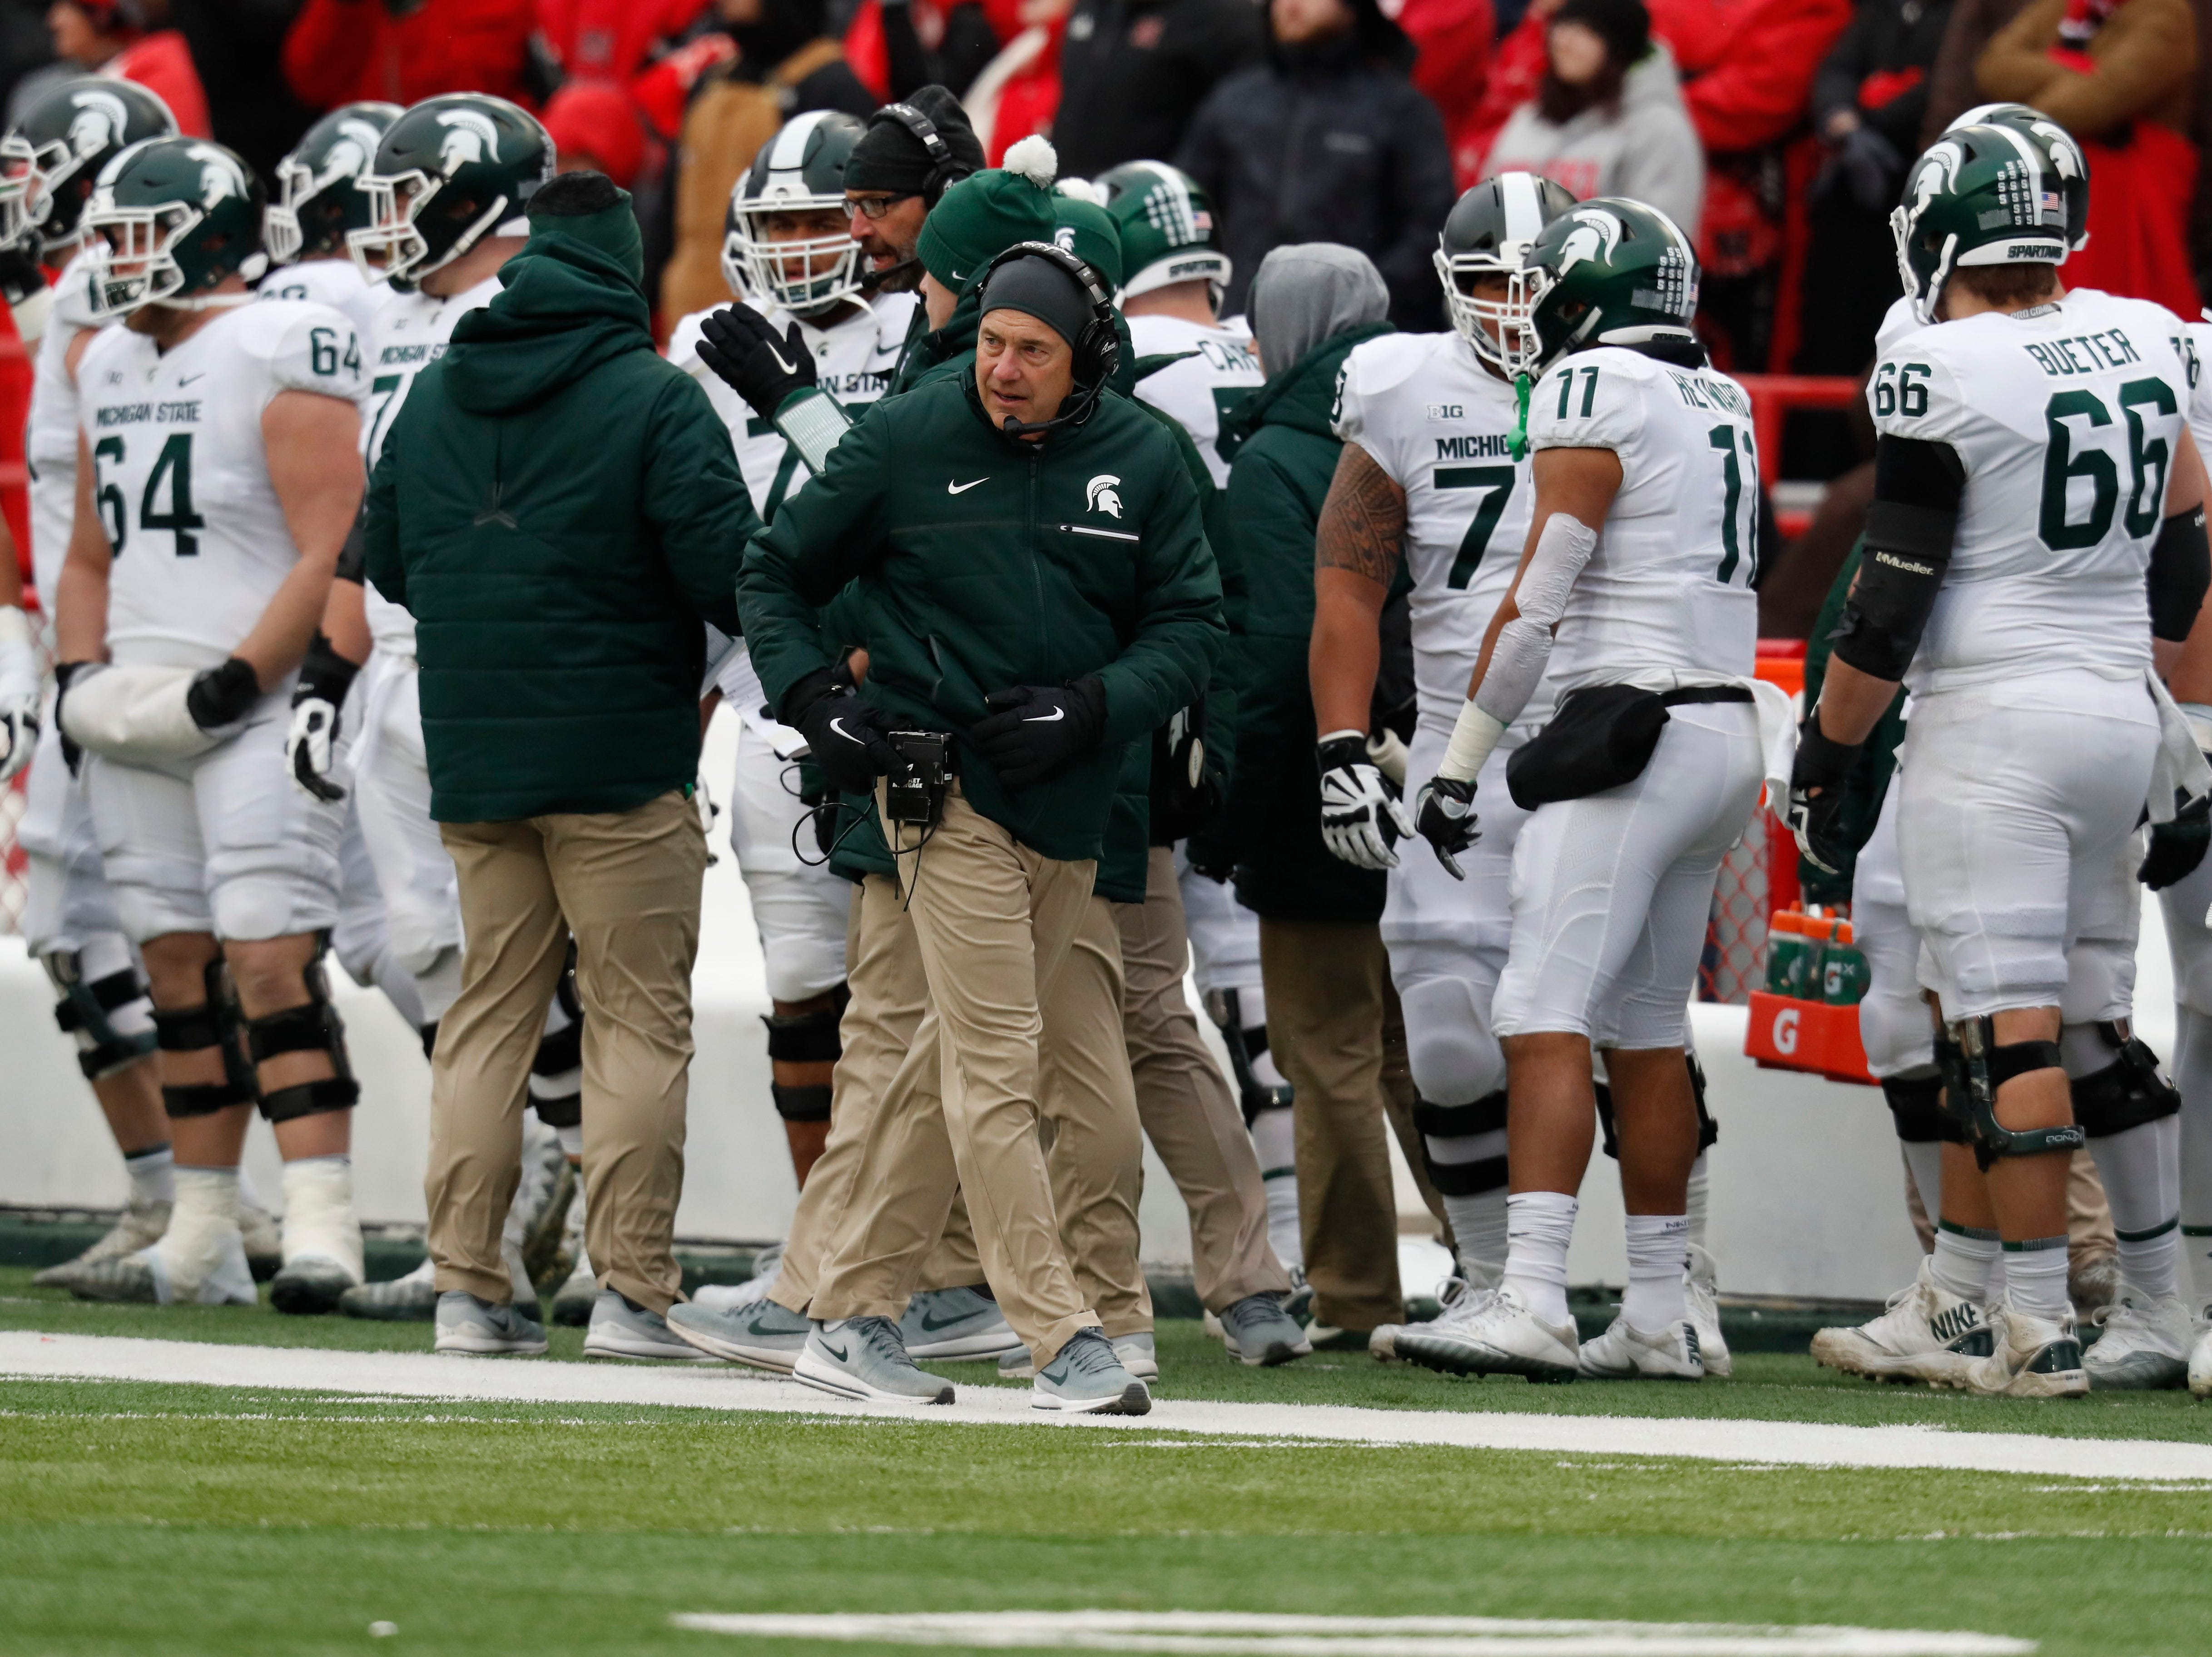 Nov 17, 2018; Lincoln, NE, USA; Michigan State Spartans head coach Mark Dantonio watches from the sideline during the game against the Nebraska Cornhuskers in the first half at Memorial Stadium. Mandatory Credit: Bruce Thorson-USA TODAY Sports